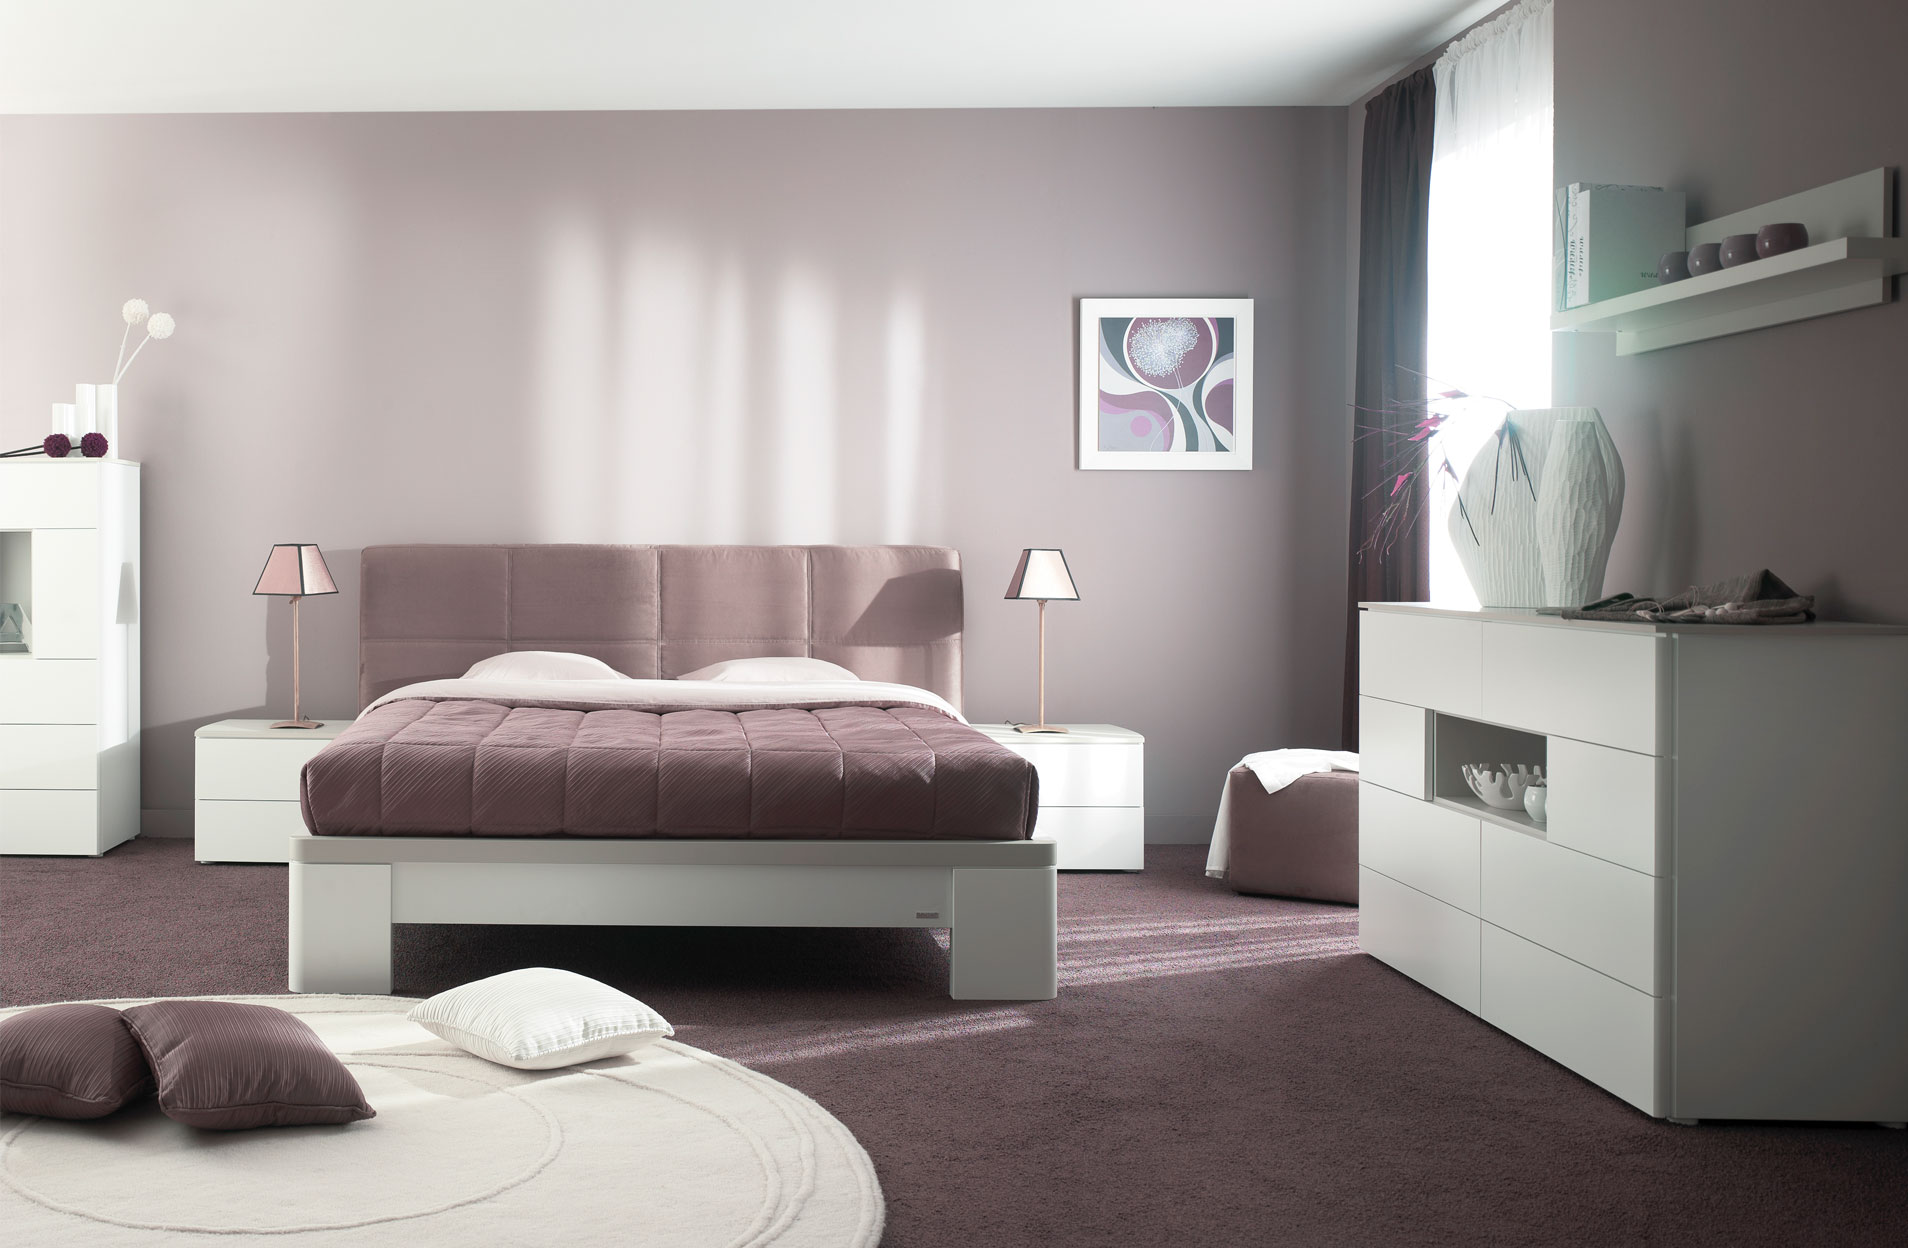 Inspiration d coration de chambre contemporaine gautier opalia for Chambre a coucher contemporaine